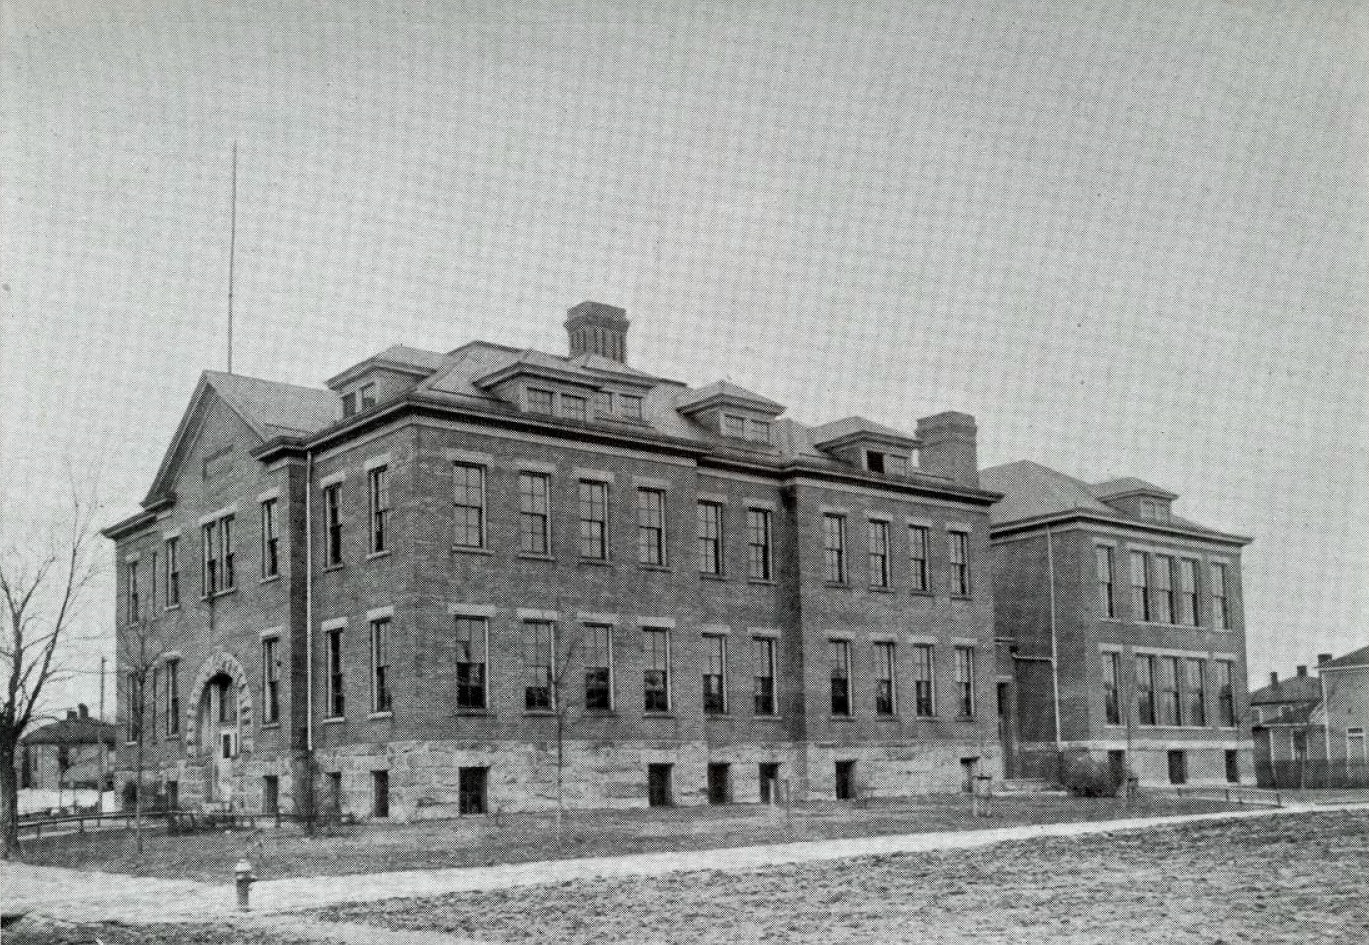 Ensign School from corner of 4th Avenue & 21st Street circa 1910-11.